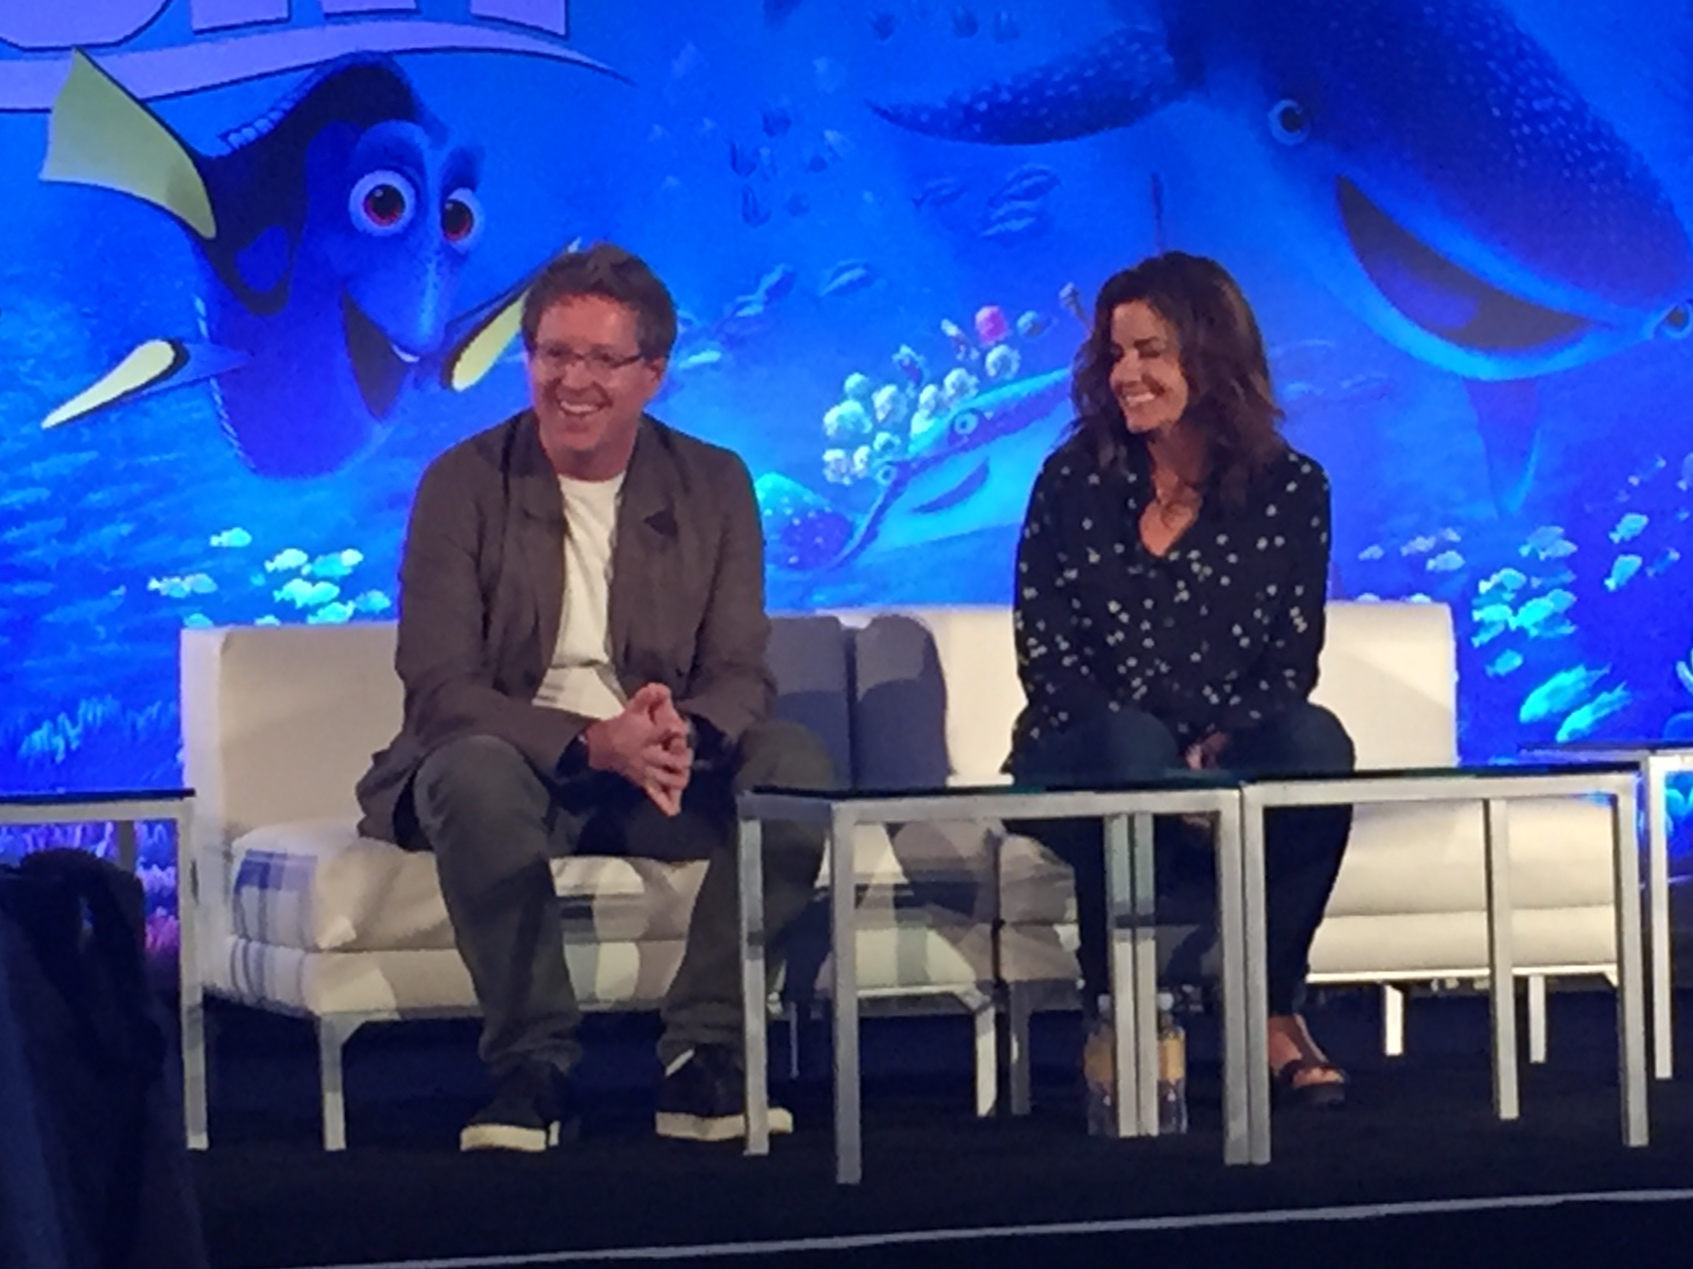 Director Andrew Stanton and Producer Lindsey Collins Talk About Finding Dory